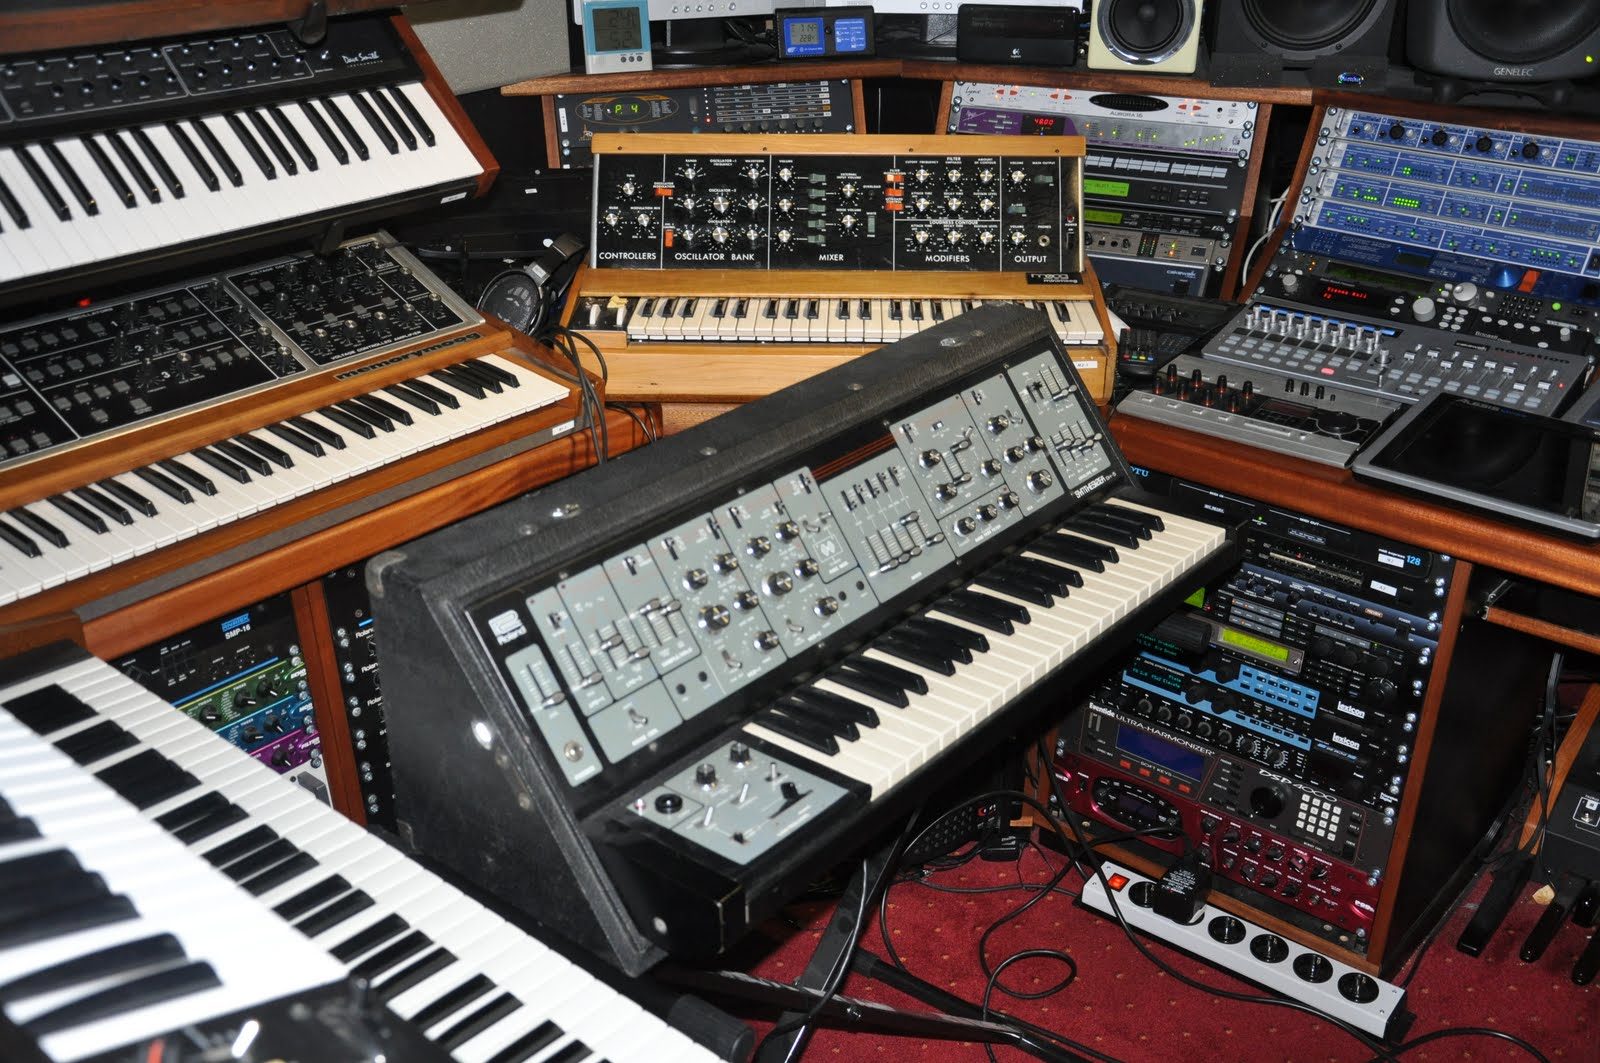 Synth nl Blog: Making the last SFX on the SH5 for Apollo